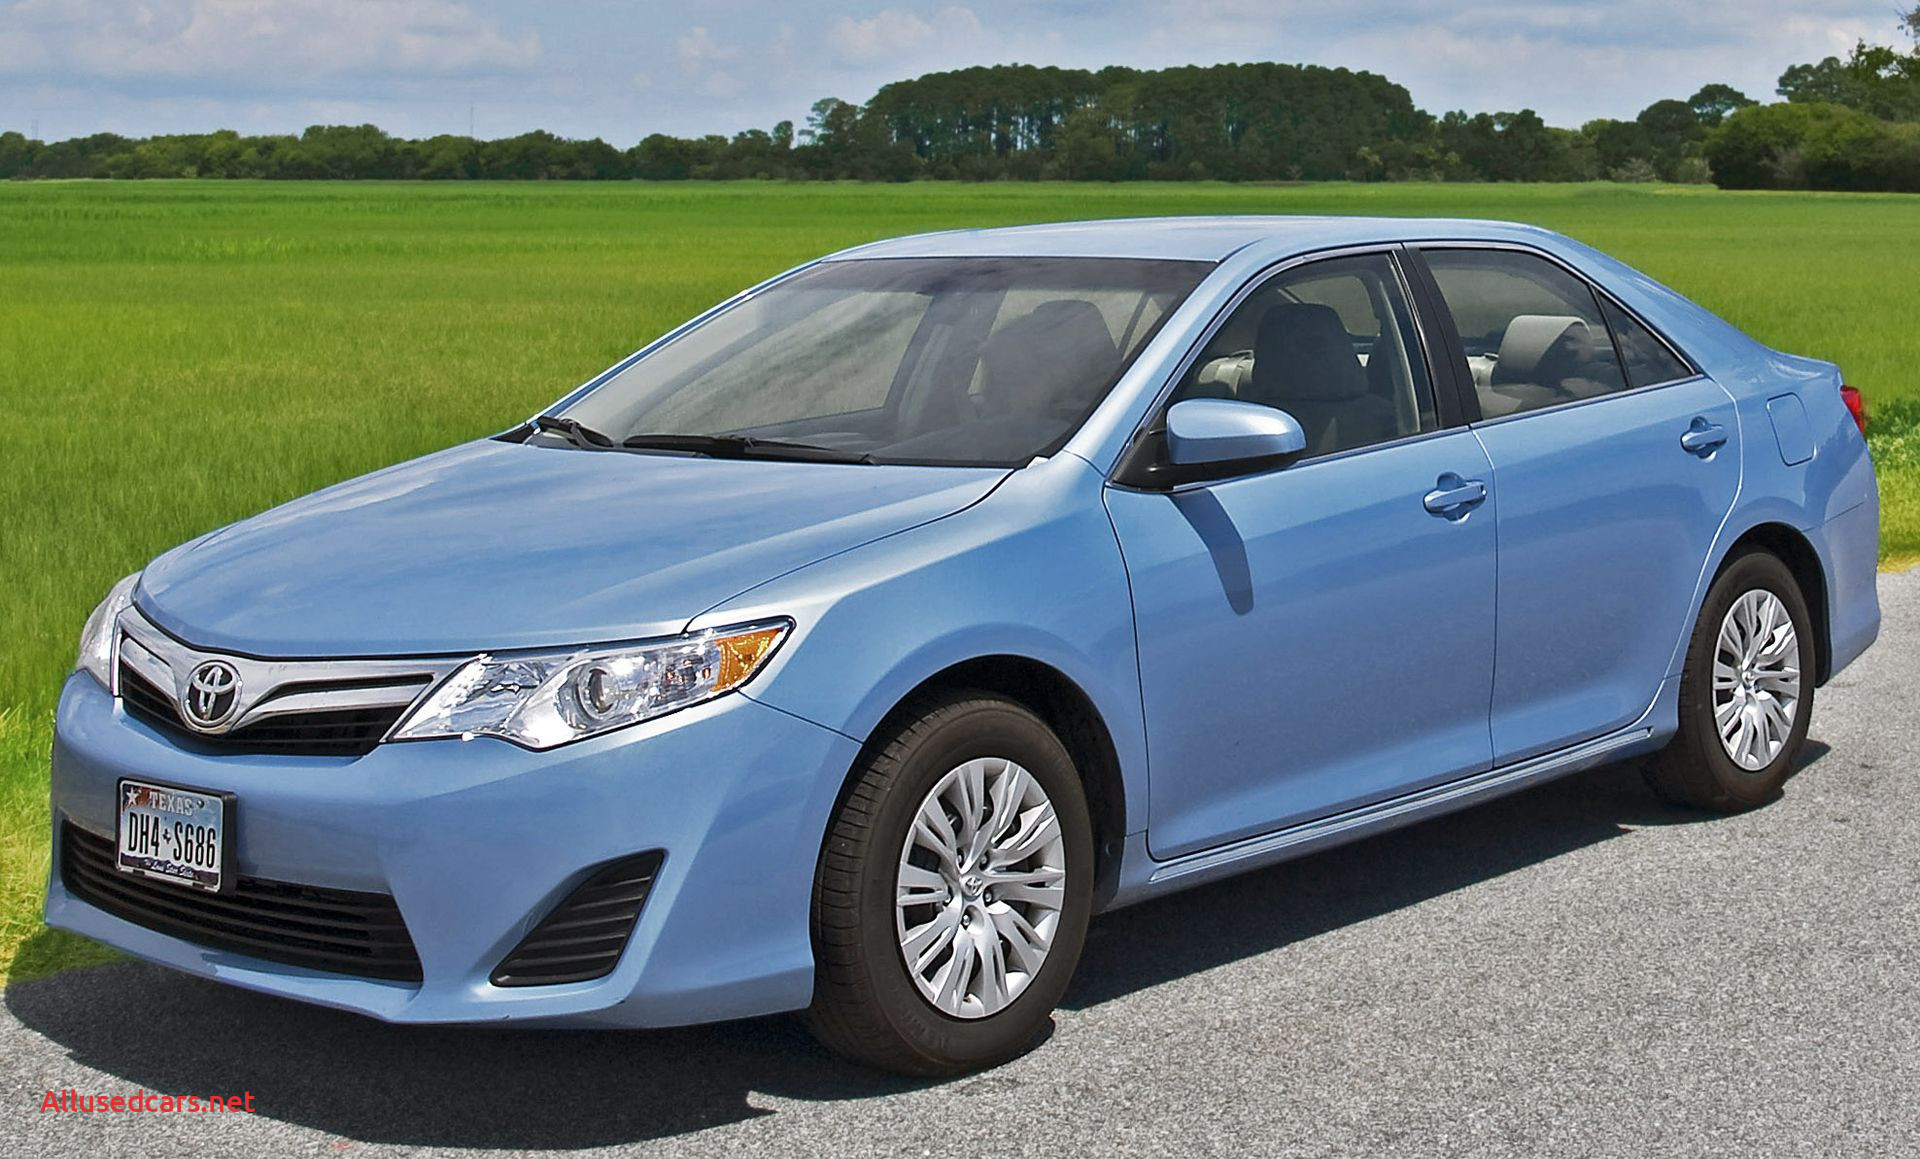 2014 toyota Camry Luxury How to Check Obd 2 Diagnostics On A toyota Camry